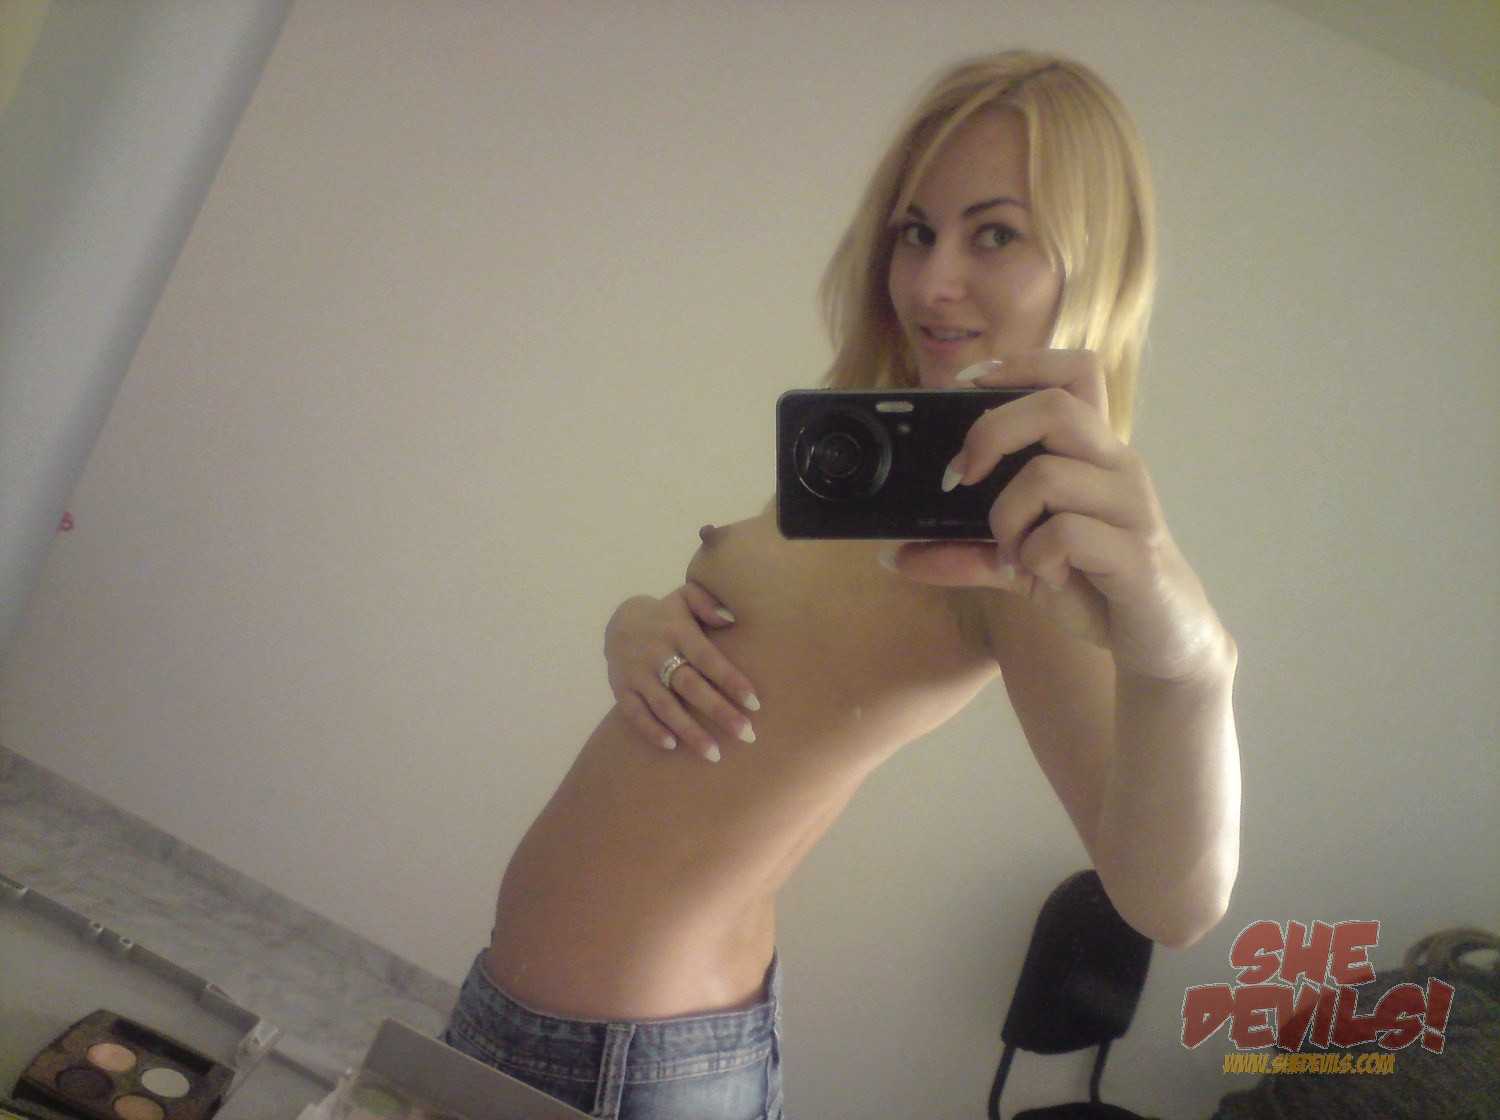 young selfies naked Porn Gallery: Cute Young Blonde Self Shooter Hot Crazy Girls - XHorde.Com -  Porn Photos & Galleries